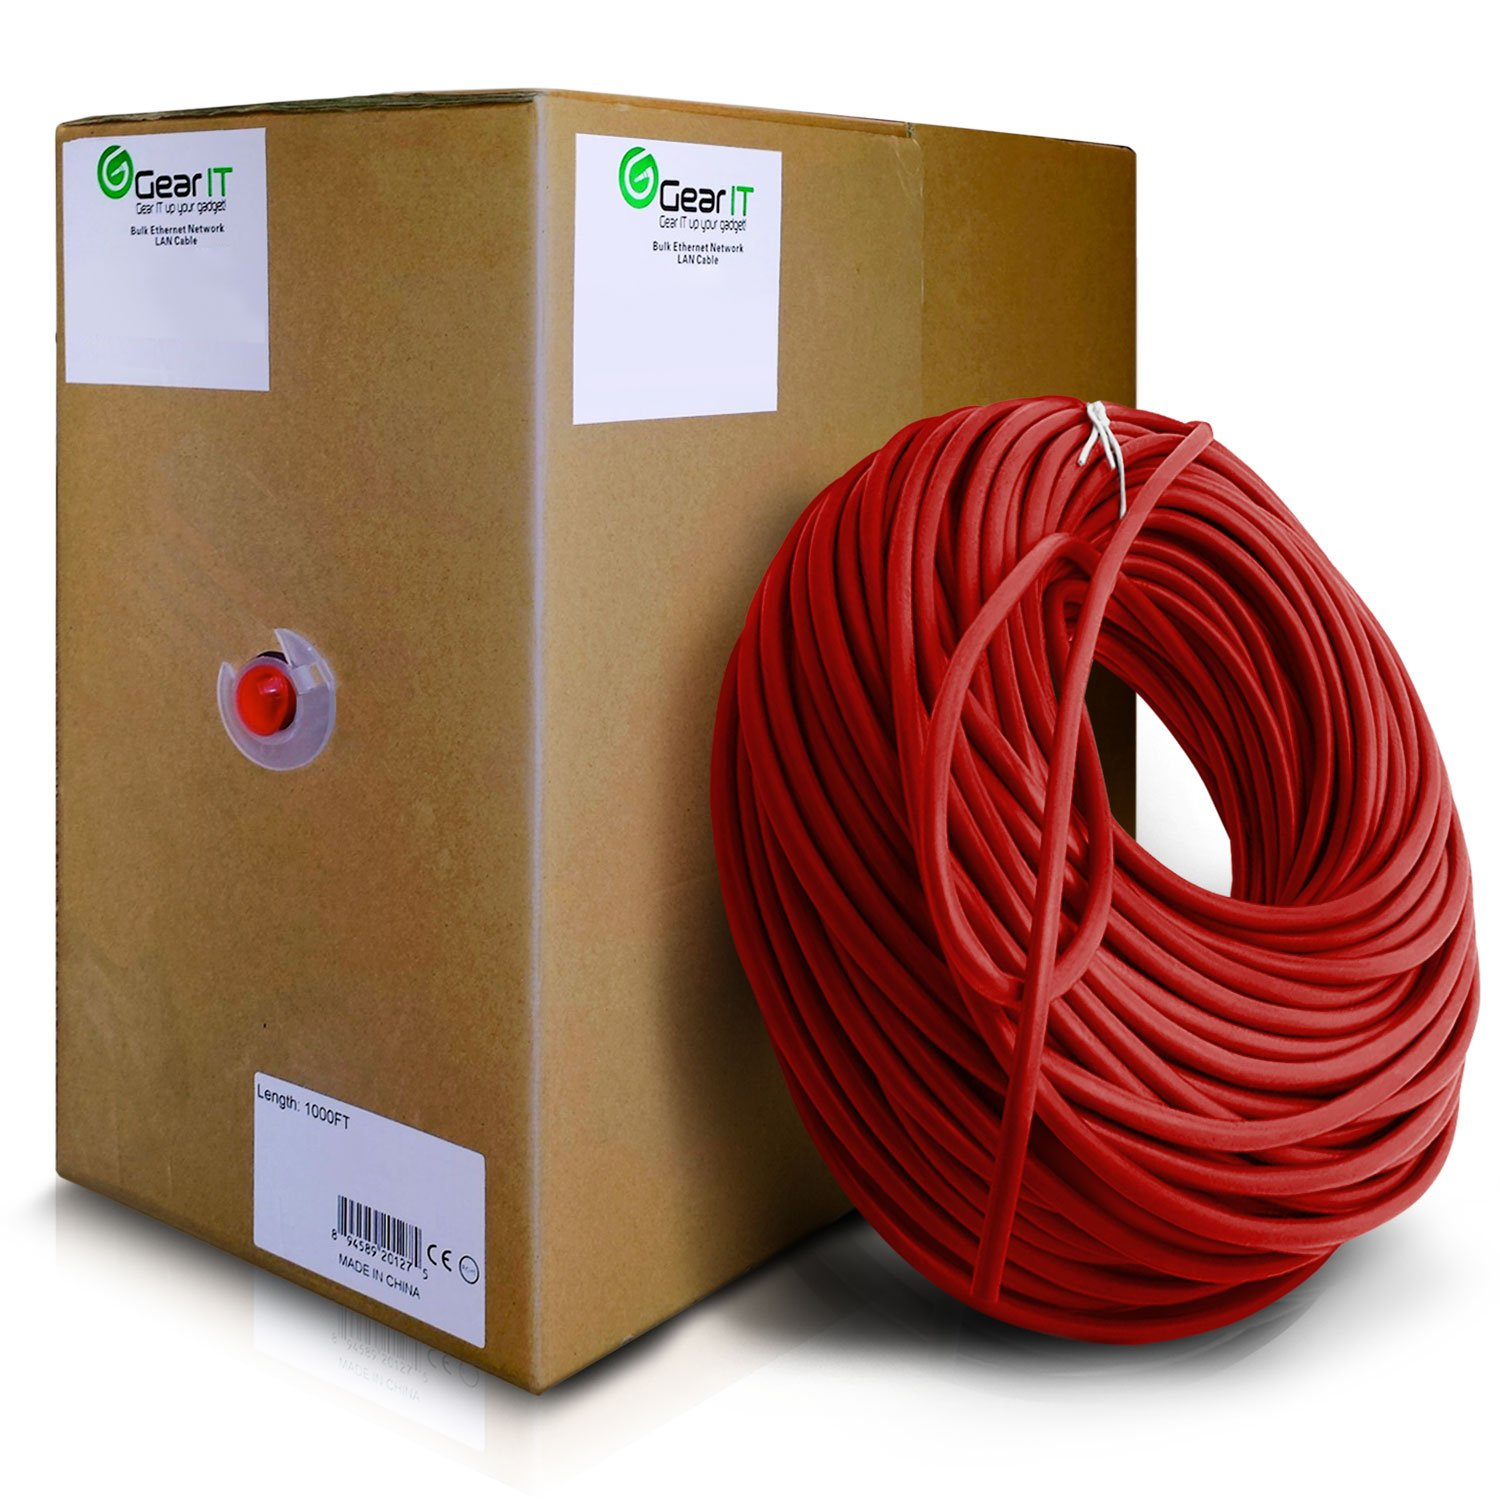 GearIT Cat5e Ethernet Cable Bulk 1000 Feet - Cat 5e 350Mhz 24AWG Full Copper Wire UTP Pull Box - In-Wall Rated (CM) Stranded Cat5e, Red